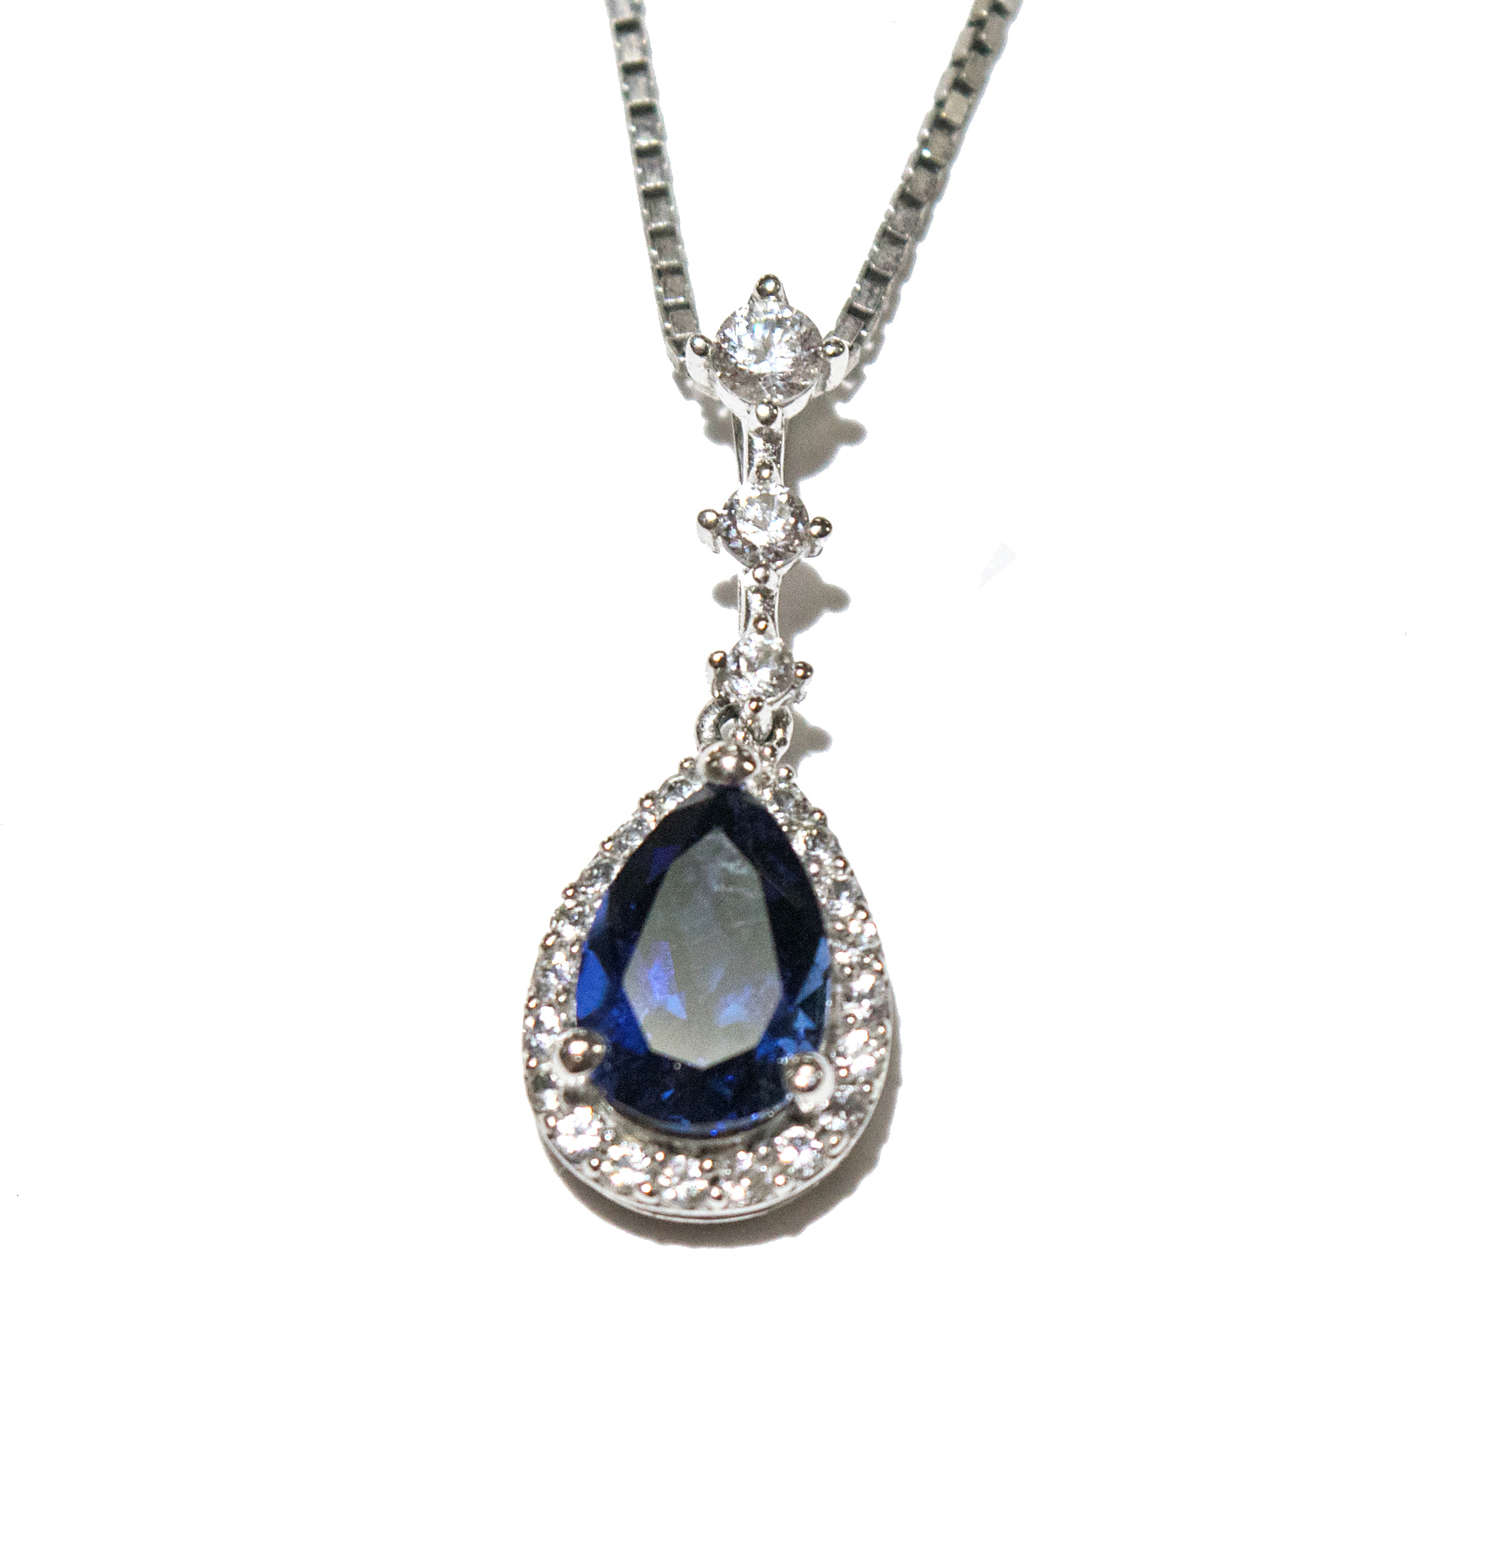 necklace shaped cut diamond beautiful jewelry pear jewellery pendant